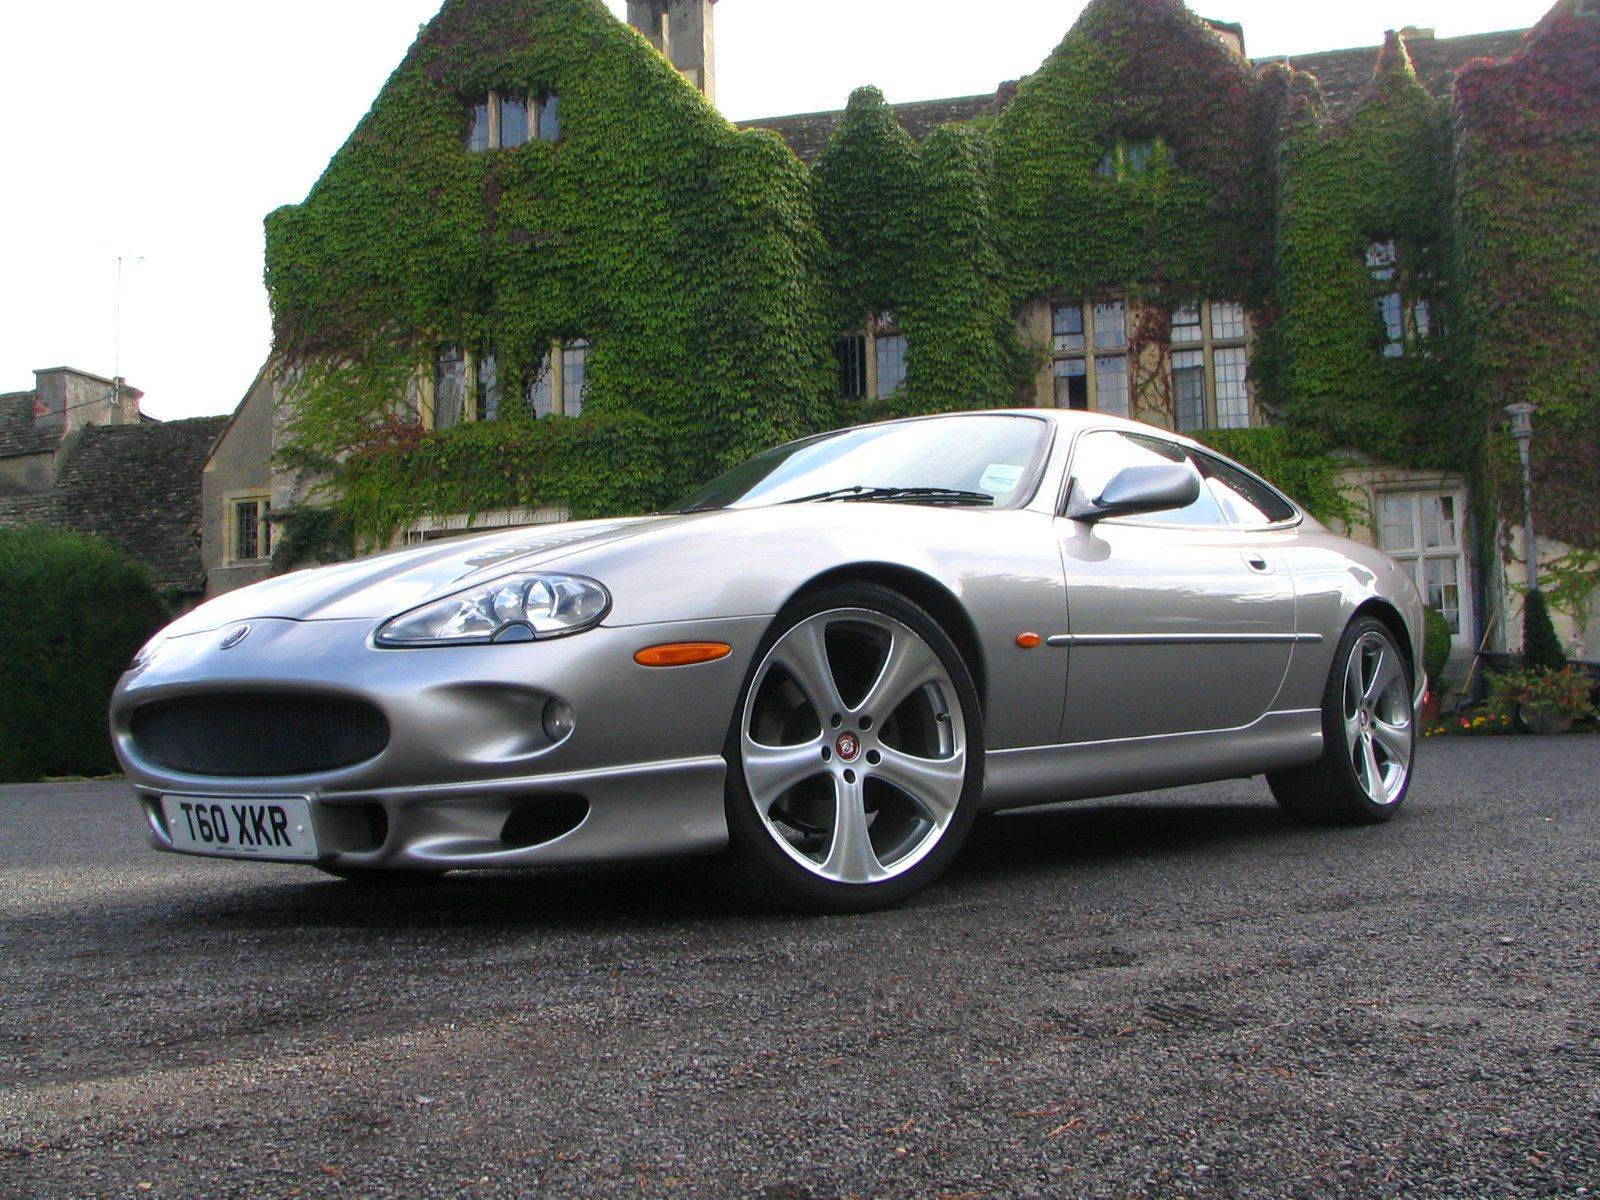 jaguar xkr 4 0 supercharged coupe v8 jaguars for sale jaguar jaguar xk8 coupe. Black Bedroom Furniture Sets. Home Design Ideas